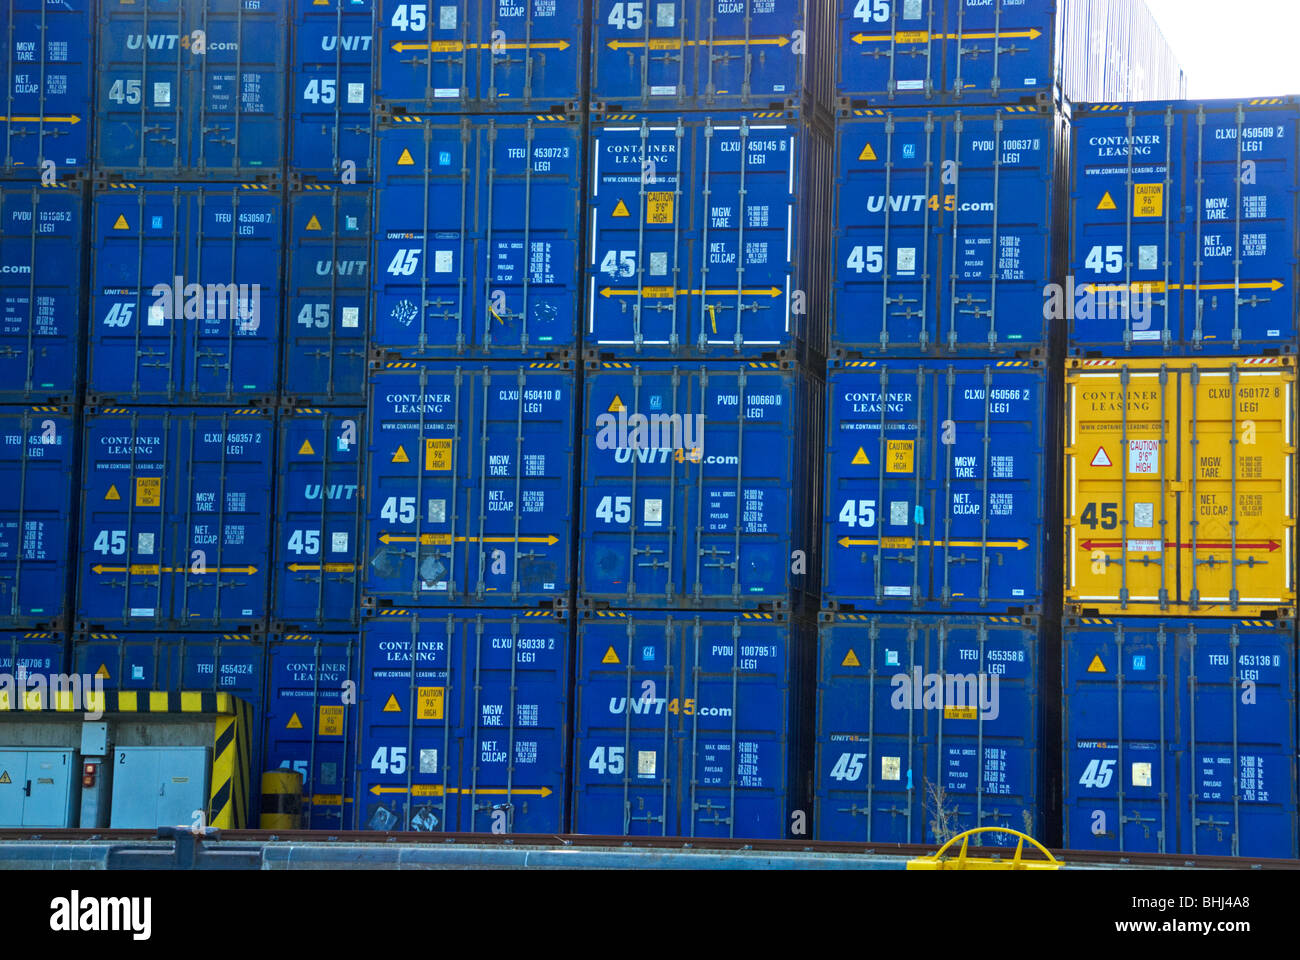 Containers for hire at the habour front in Lübeck, Germany. Stock Photo